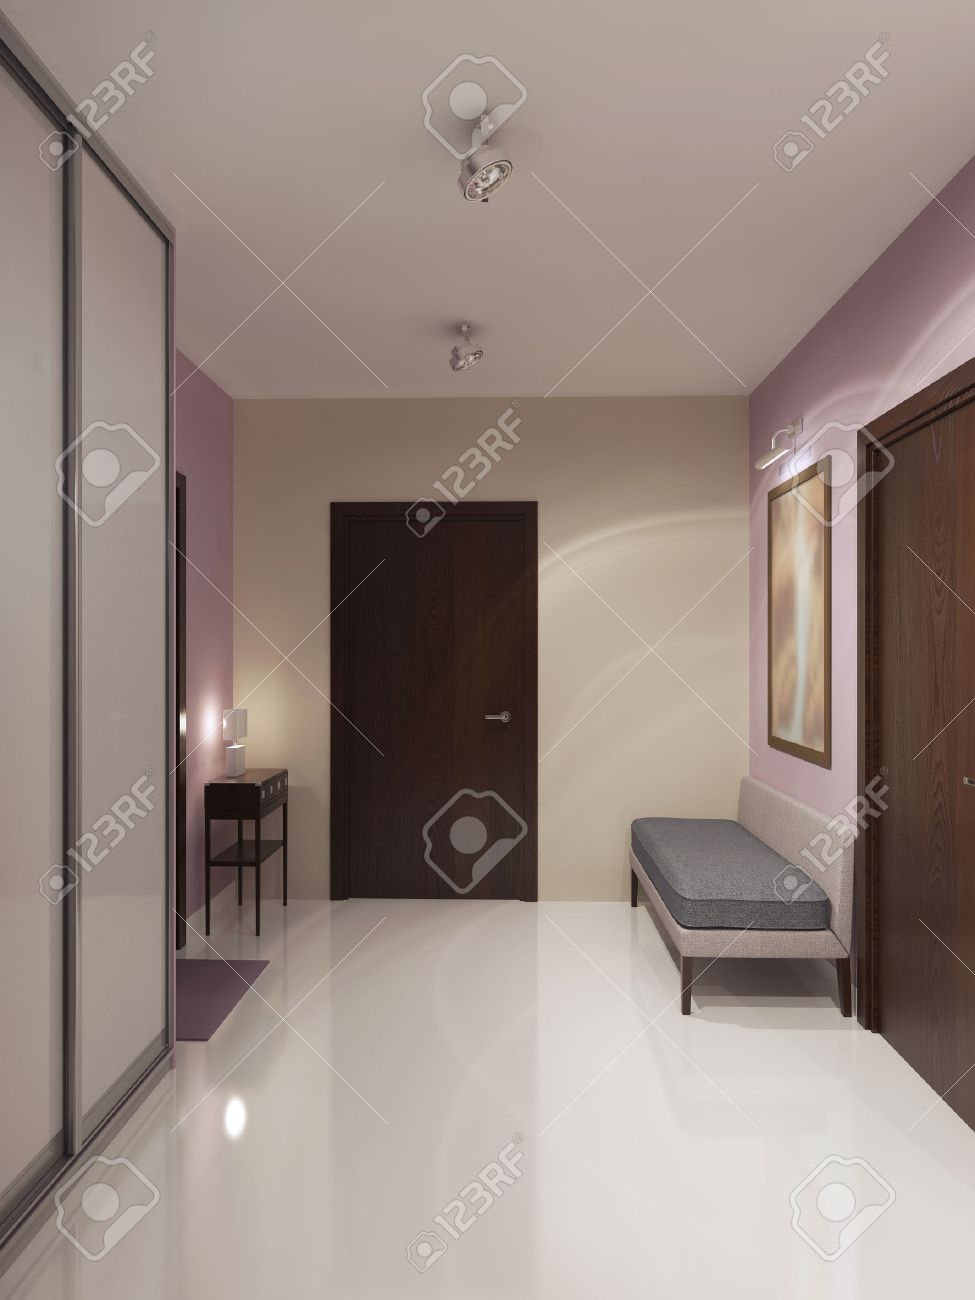 Design of spacious minimalist hallway cream and light pink walls design of spacious minimalist hallway cream and light pink wallswhite ceiling and polished aloadofball Gallery